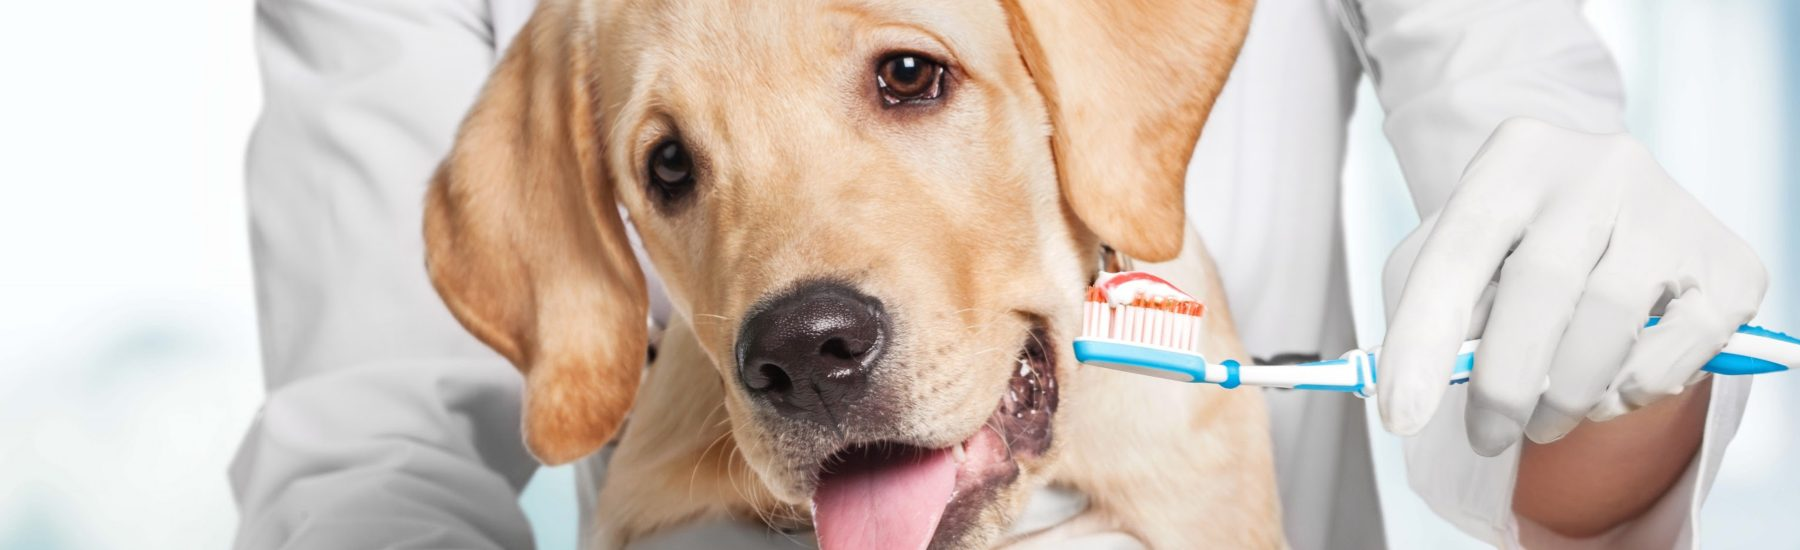 Dog and veterinarian holding a toothbrush